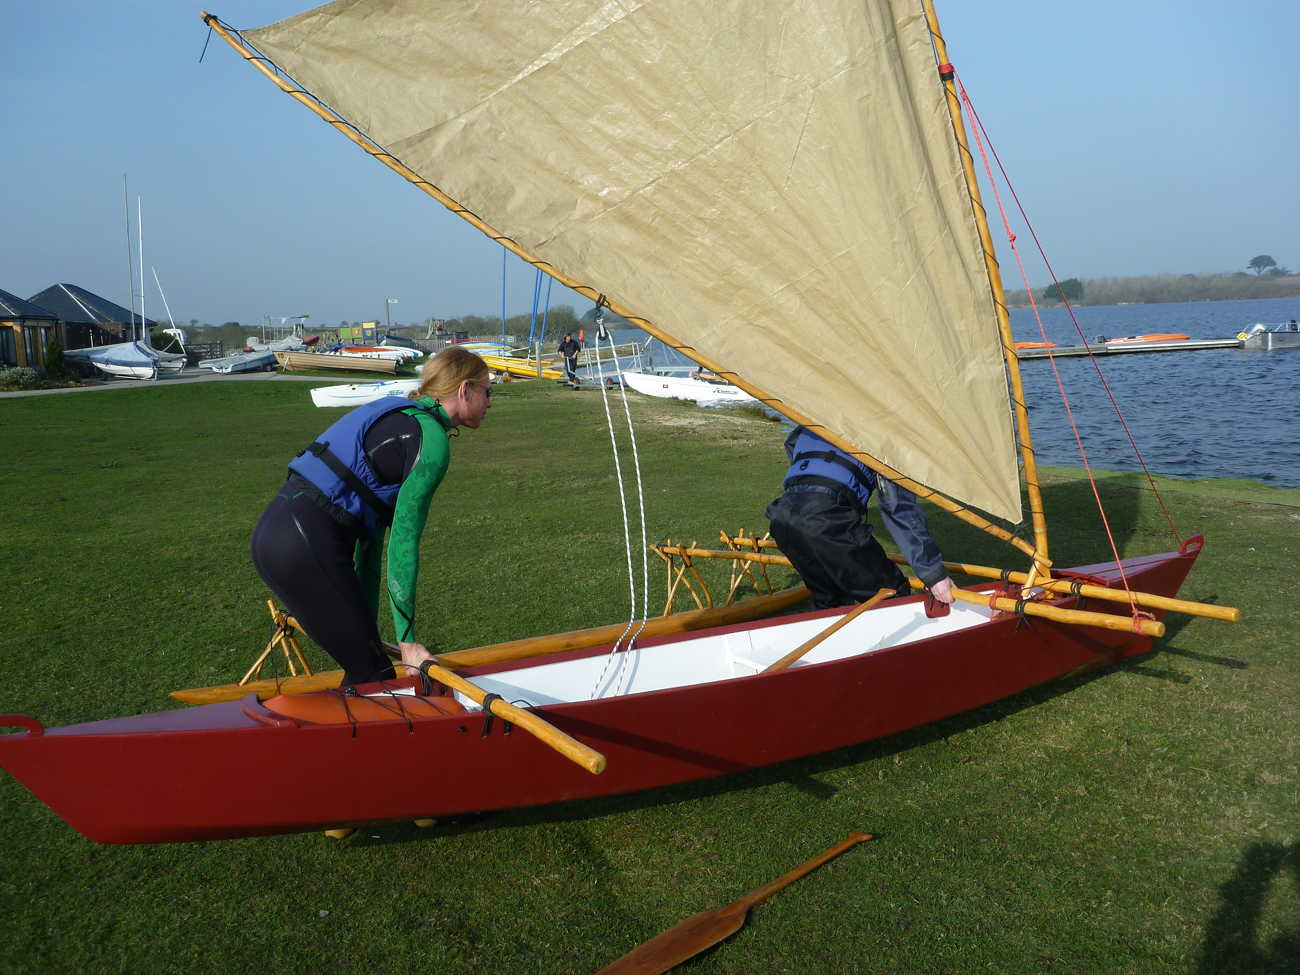 Red Melanesia outrigger canoe with crabclaw sail being carried by two towards the water